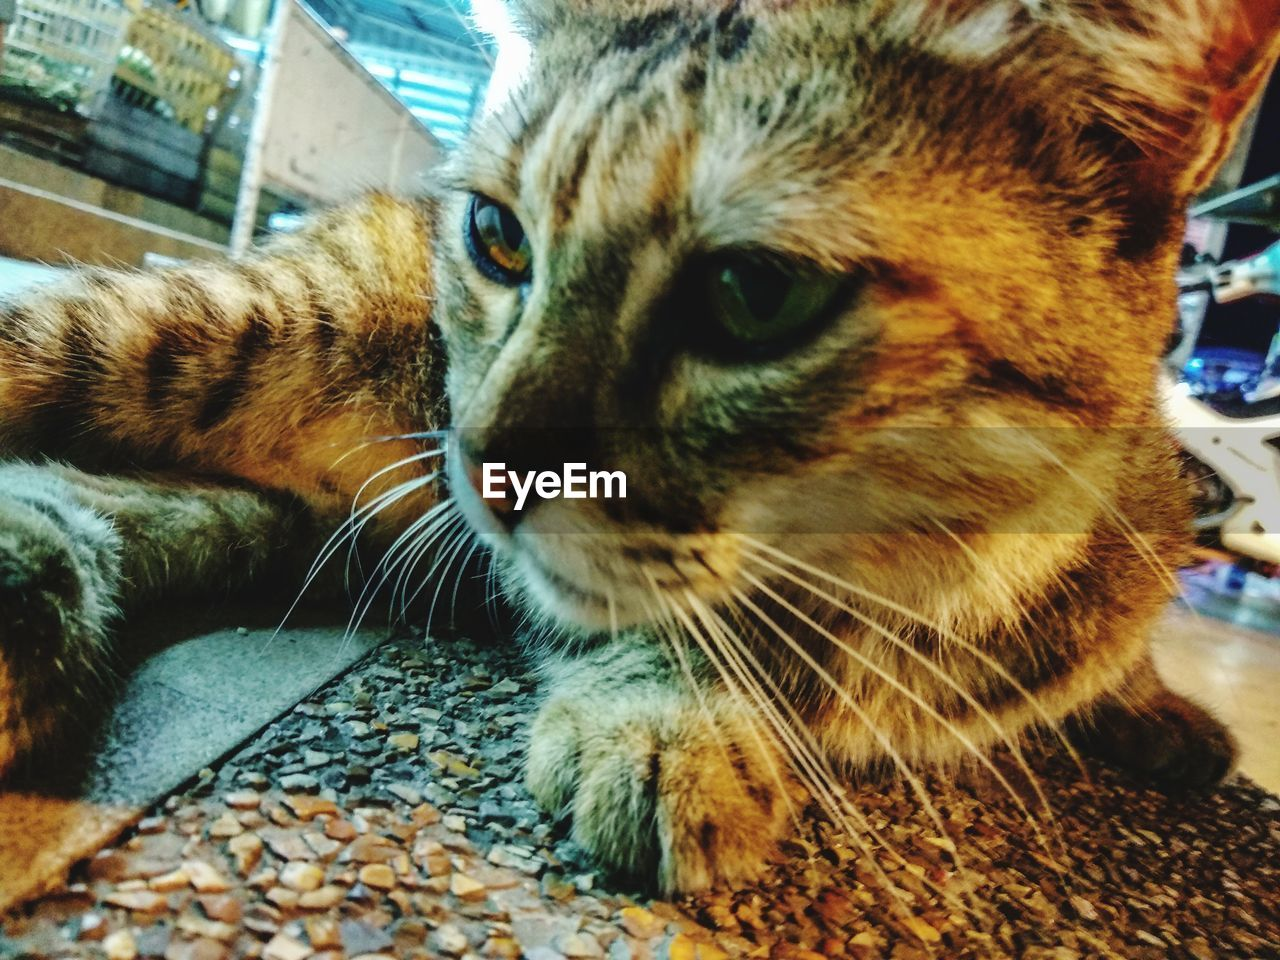 cat, domestic, domestic cat, animal themes, feline, pets, mammal, animal, domestic animals, one animal, vertebrate, close-up, whisker, looking, looking away, relaxation, no people, indoors, animal body part, animal head, animal eye, tabby